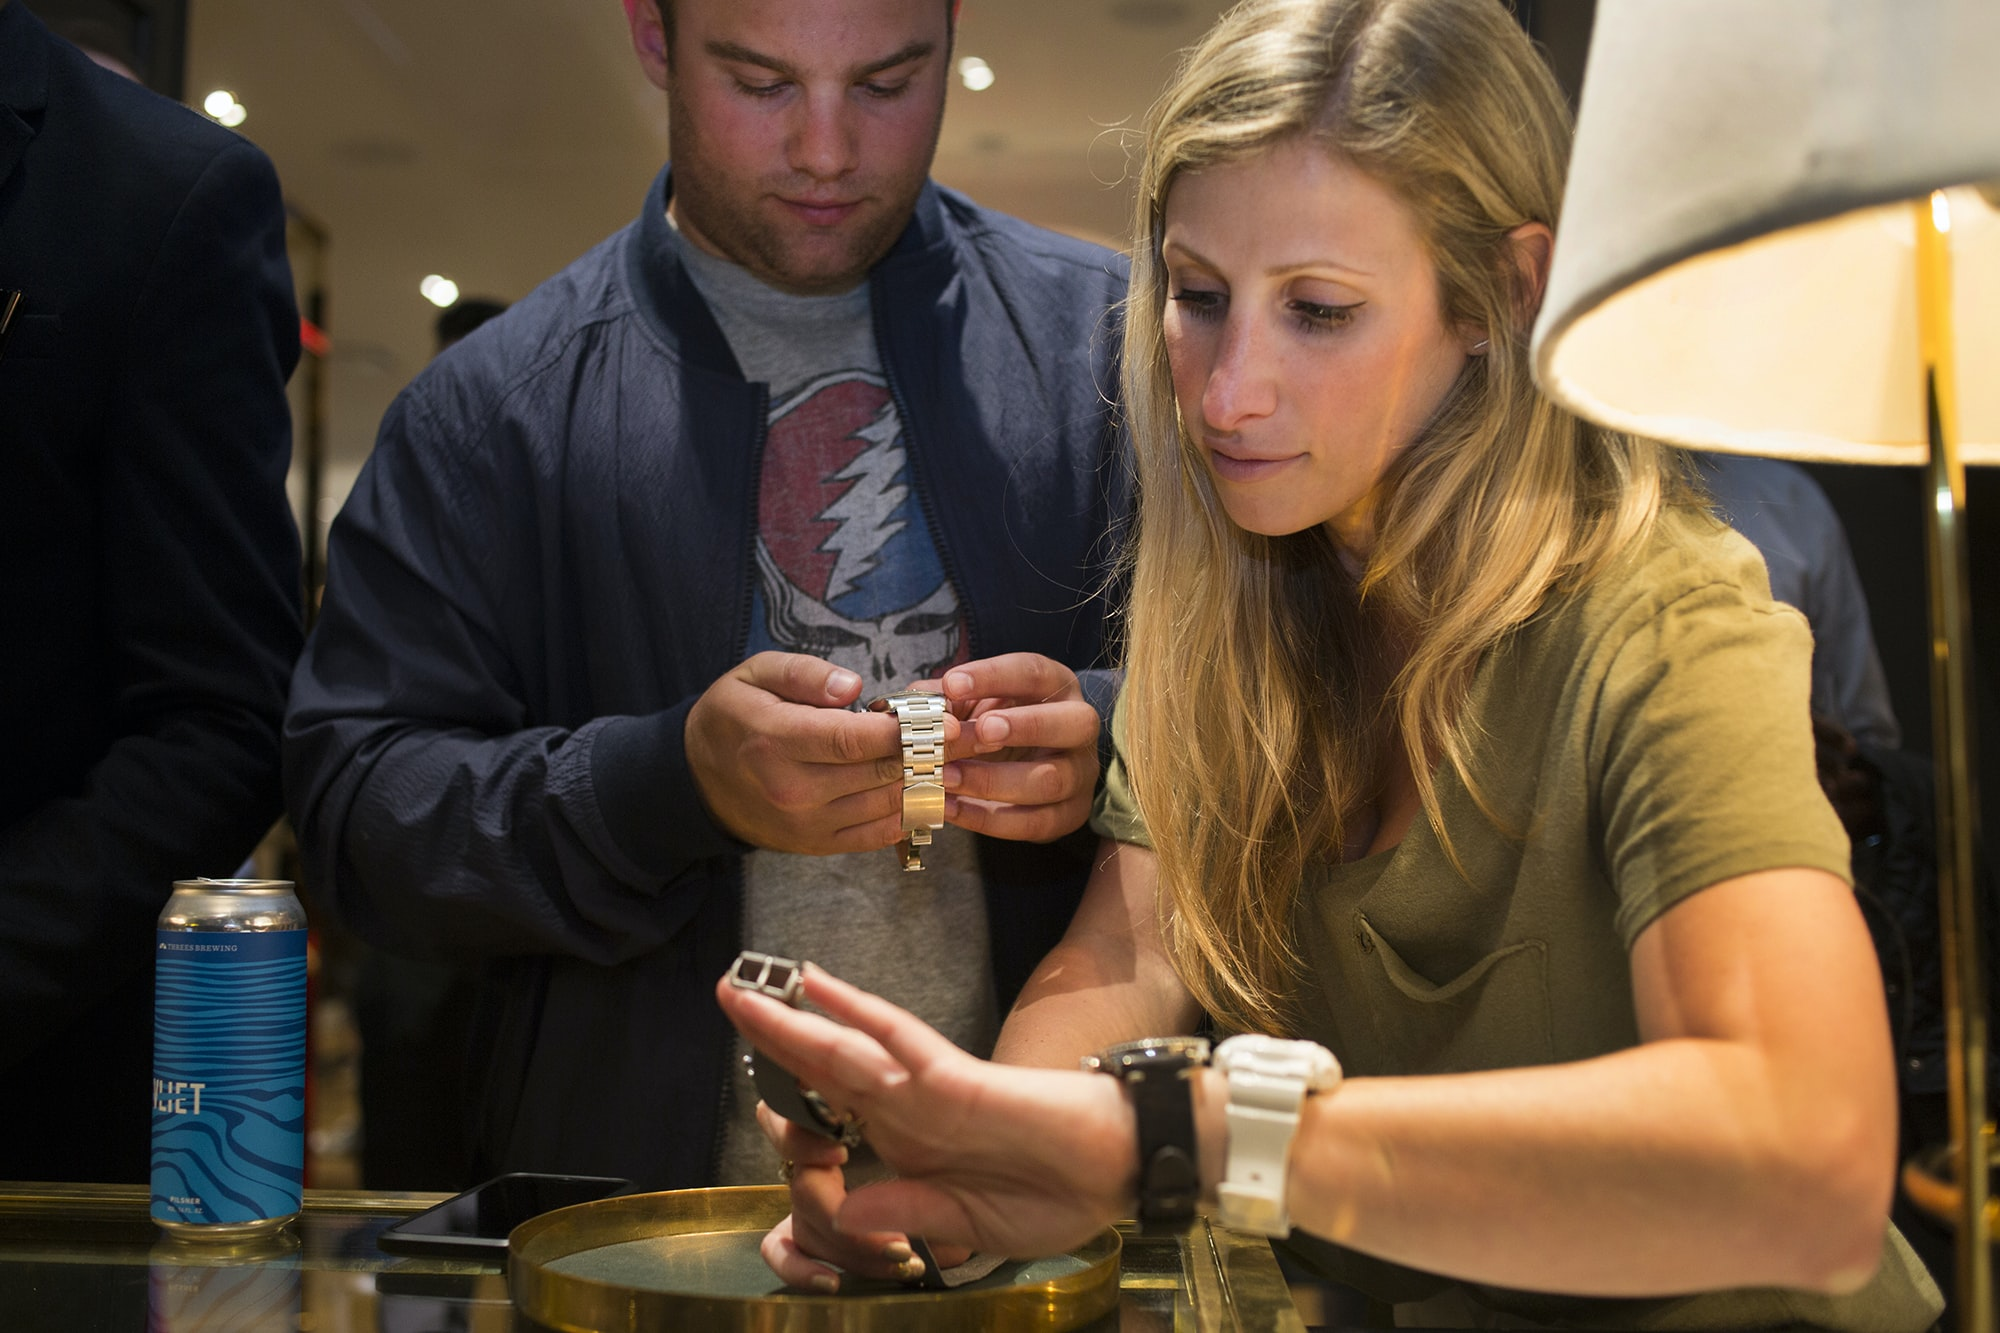 Photo Report: The HODINKEE Summer Kick-Off Party At Todd Snyder In New York City Photo Report: The HODINKEE Summer Kick-Off Party At Todd Snyder In New York City 20011163 copy